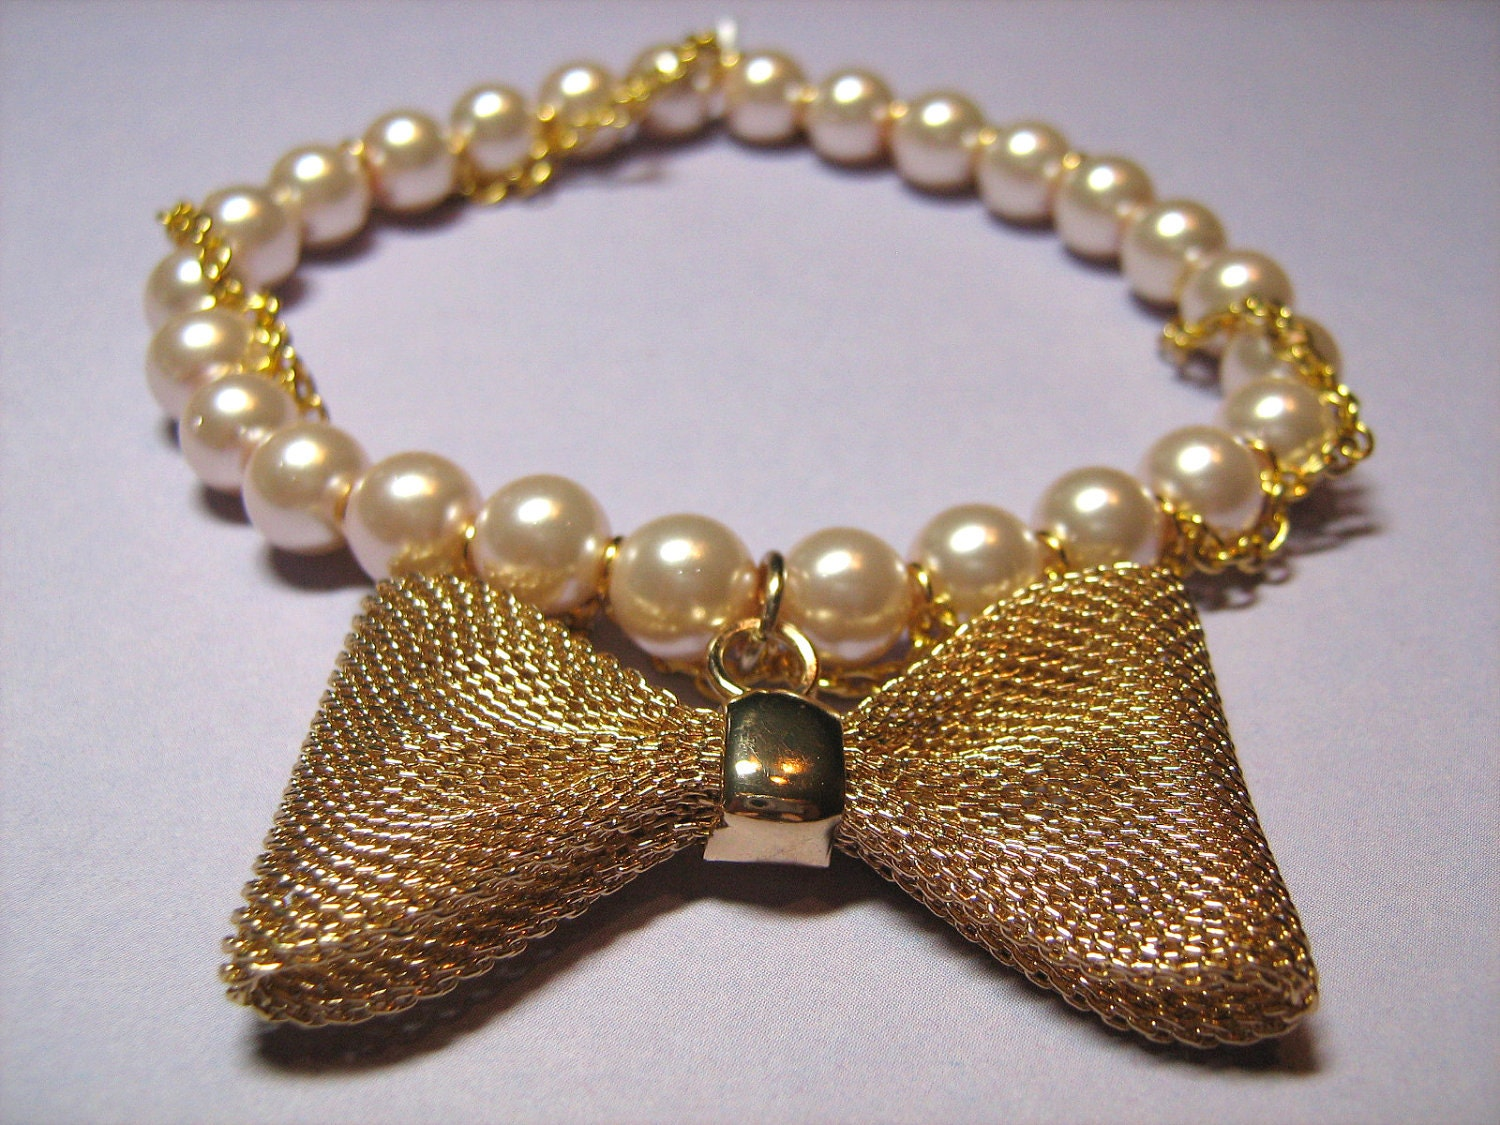 Stretch Bracelet: Pink Glass Pearls Wrapped with a Goldtone Metal Chain and Featuring a Goldtone Mesh Bow Metal Charm, for Women